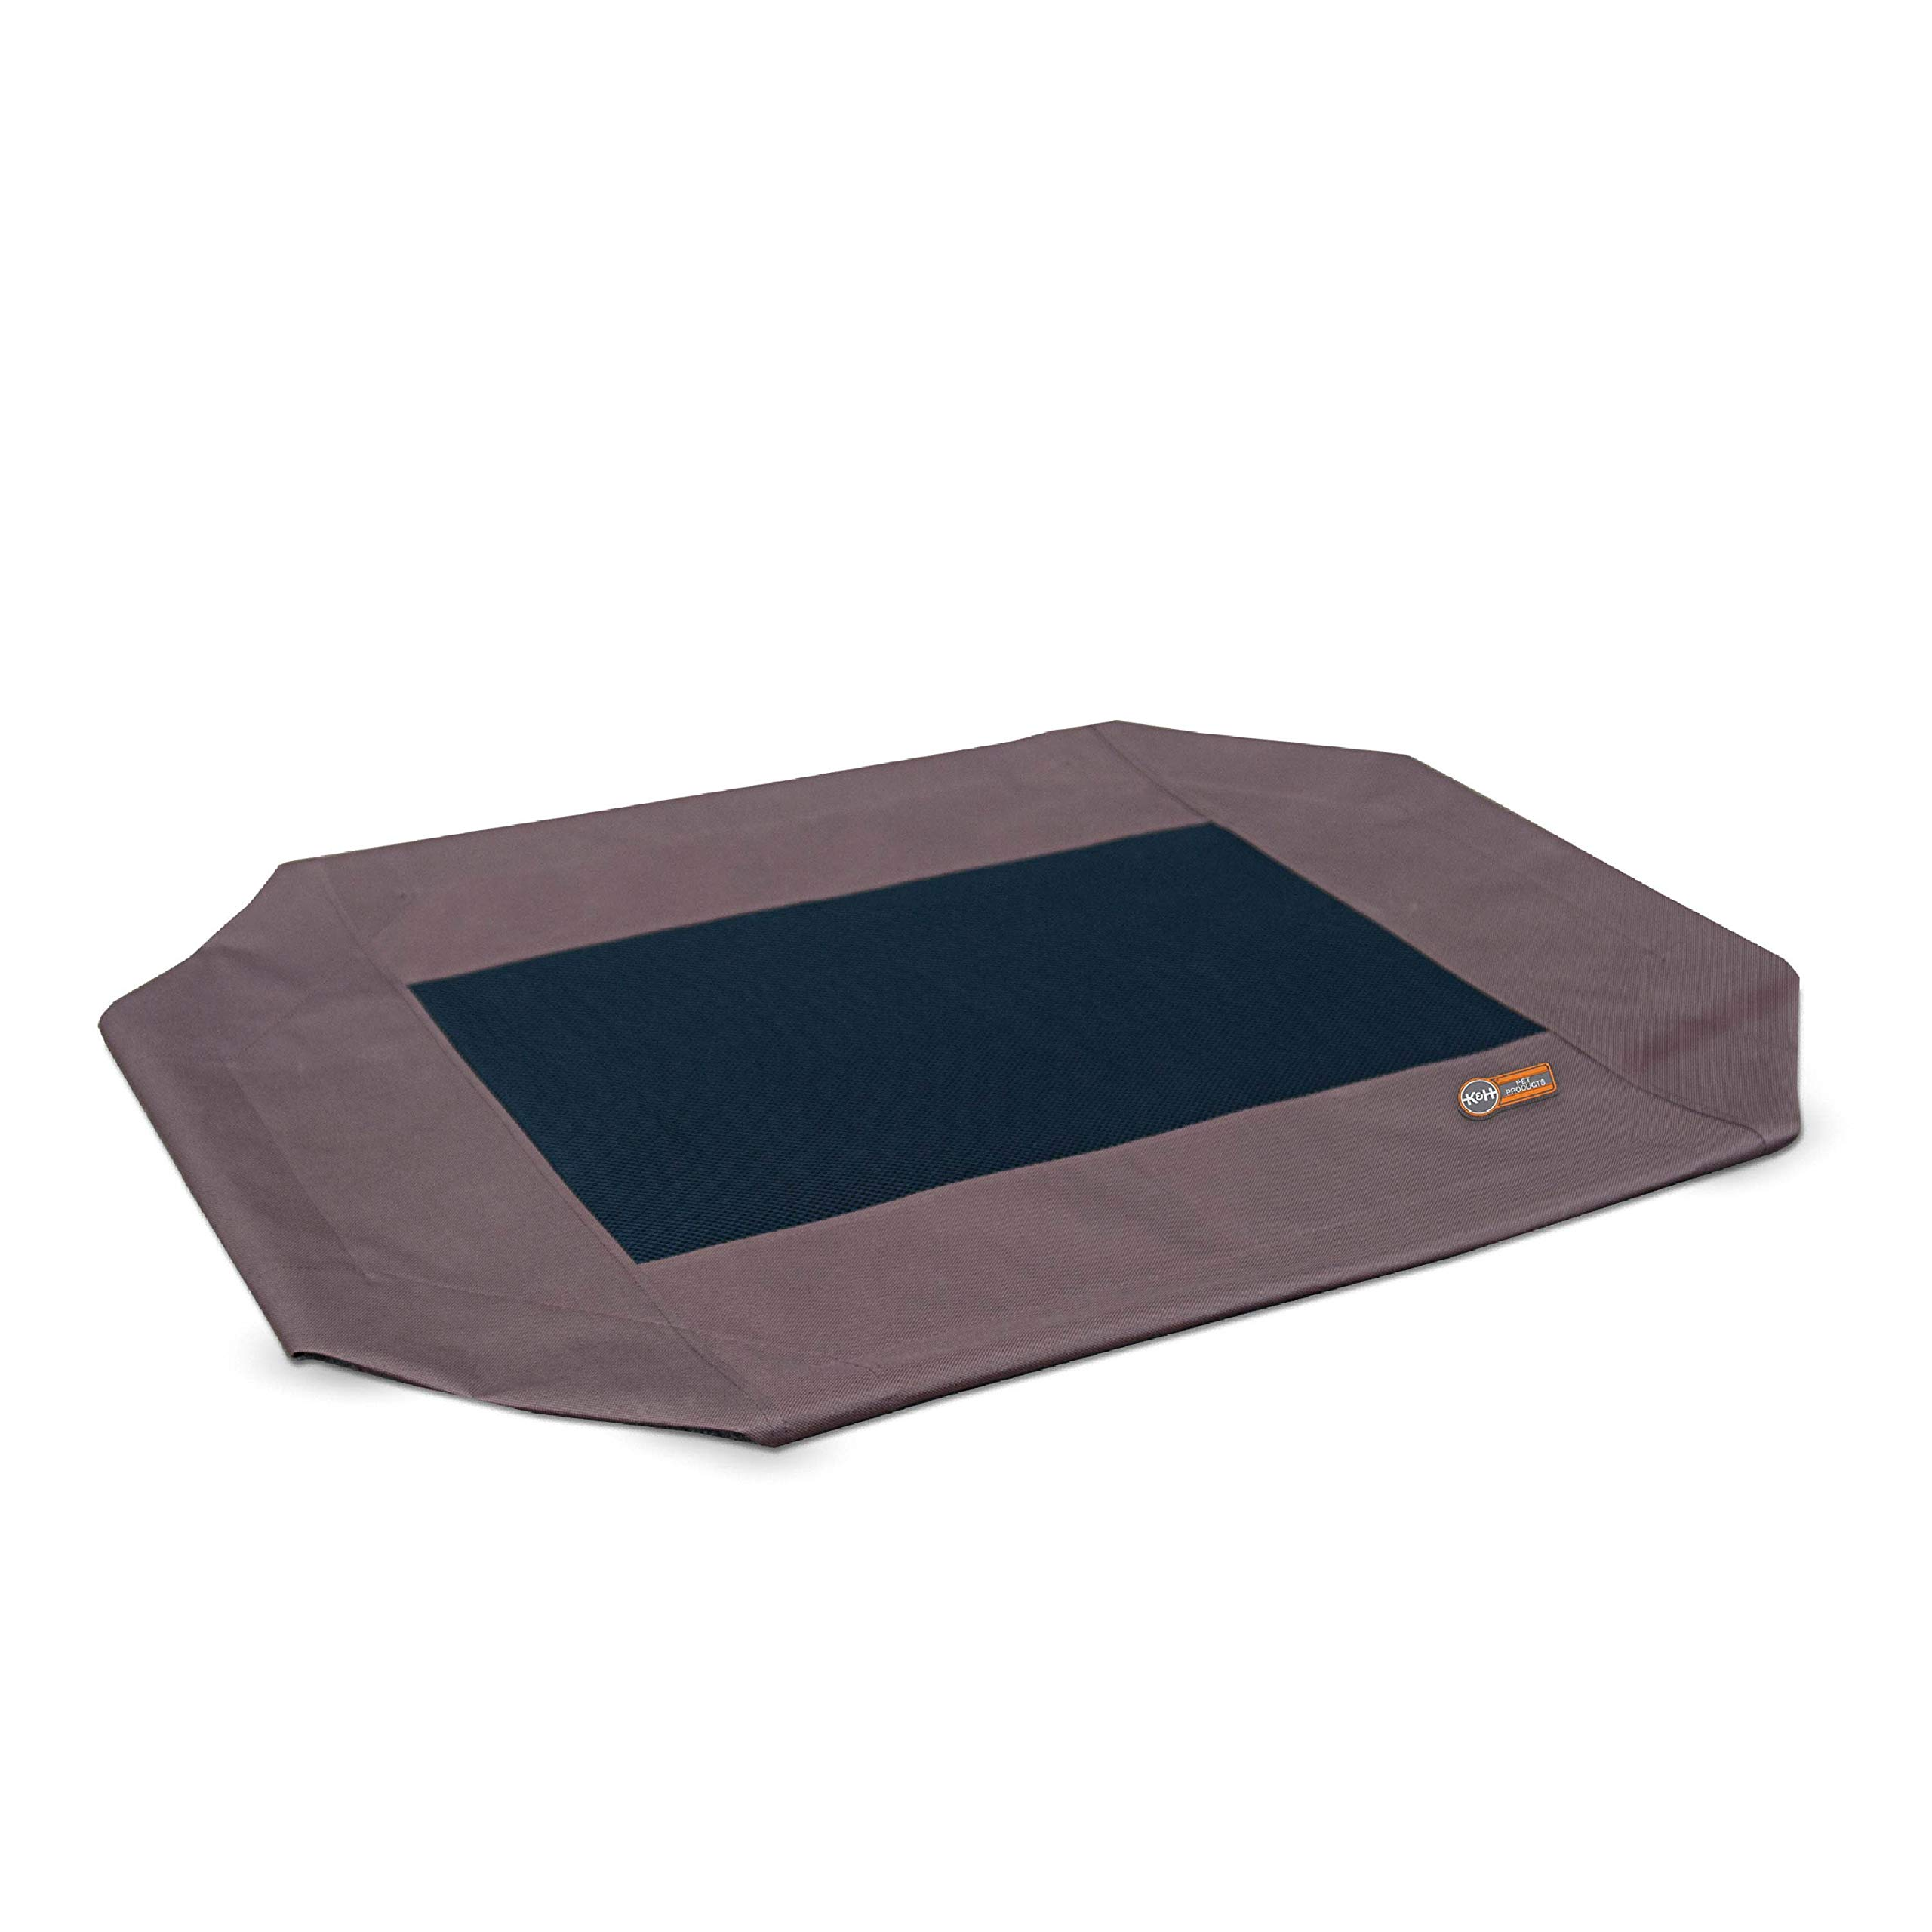 K&H PET PRODUCTS Original Pet Cot Replacement Cover for Elevated Dog Beds (Cot Sold Separately)